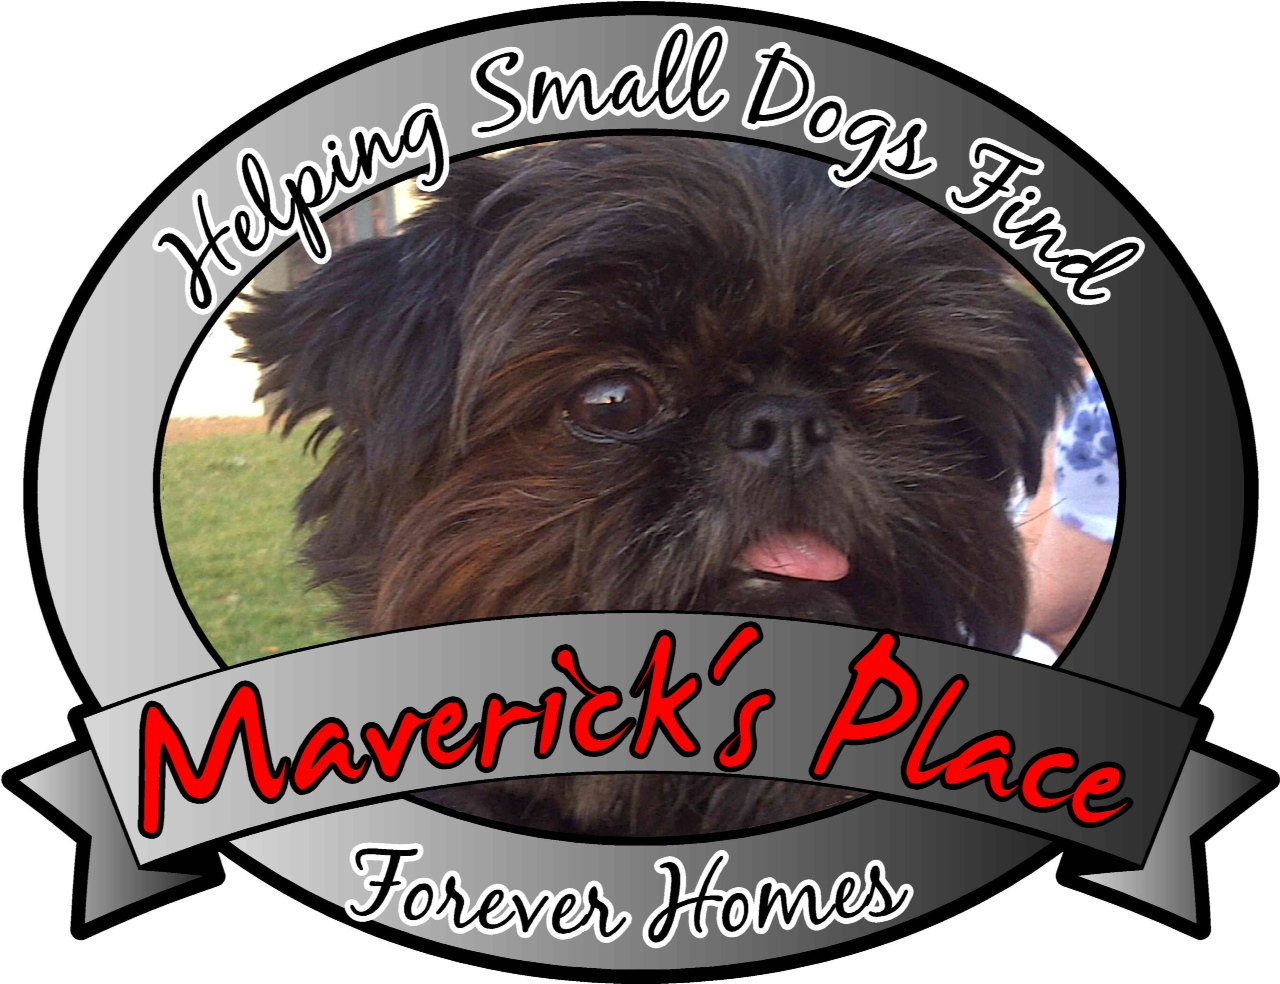 Maverick's Place